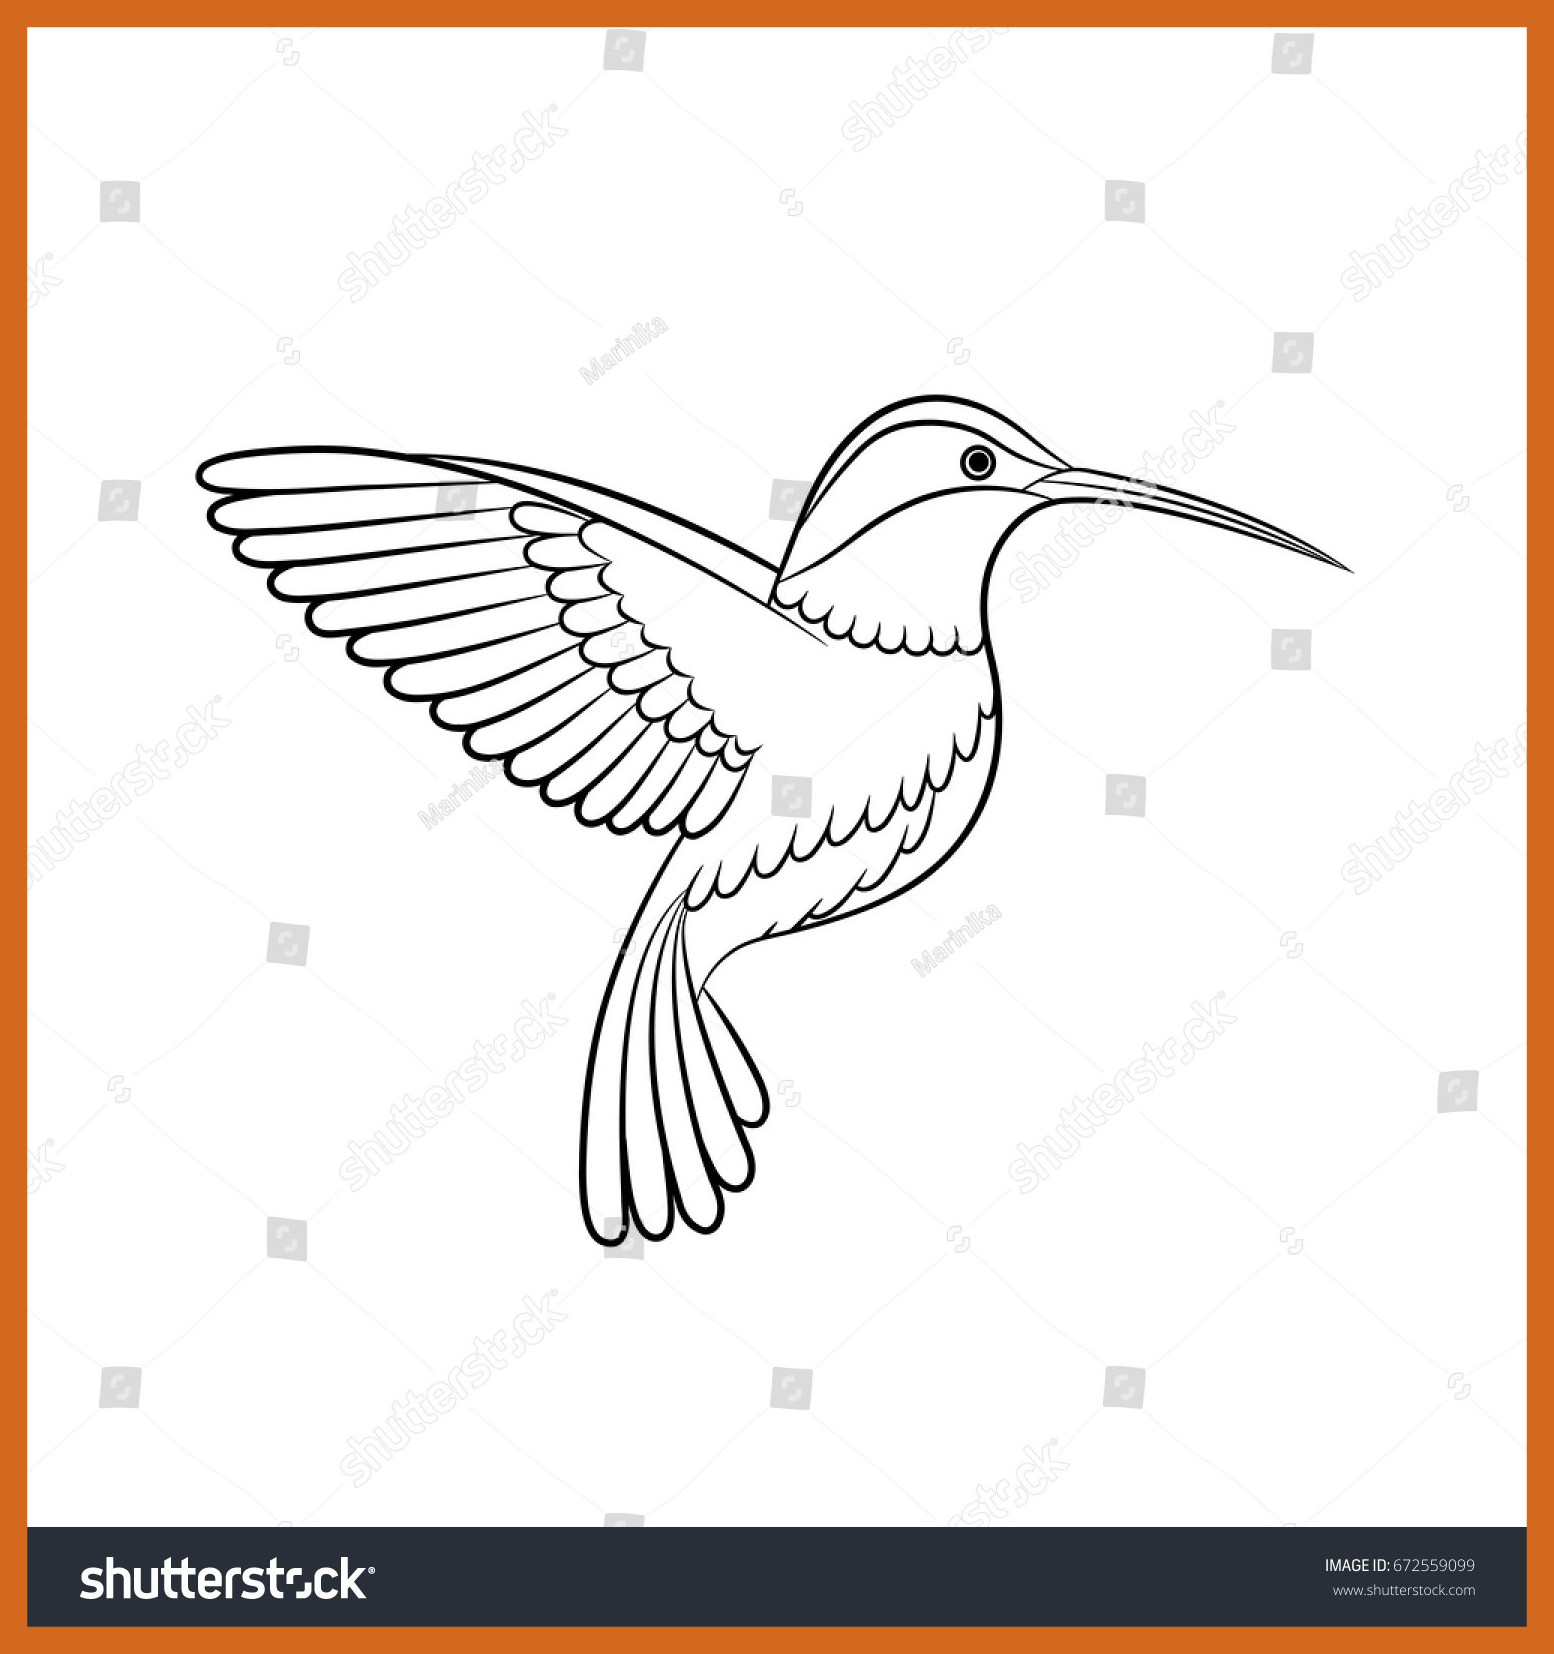 1554x1654 Stunning Outline Drawing Hummingbird Vector Isolated Stock Hd